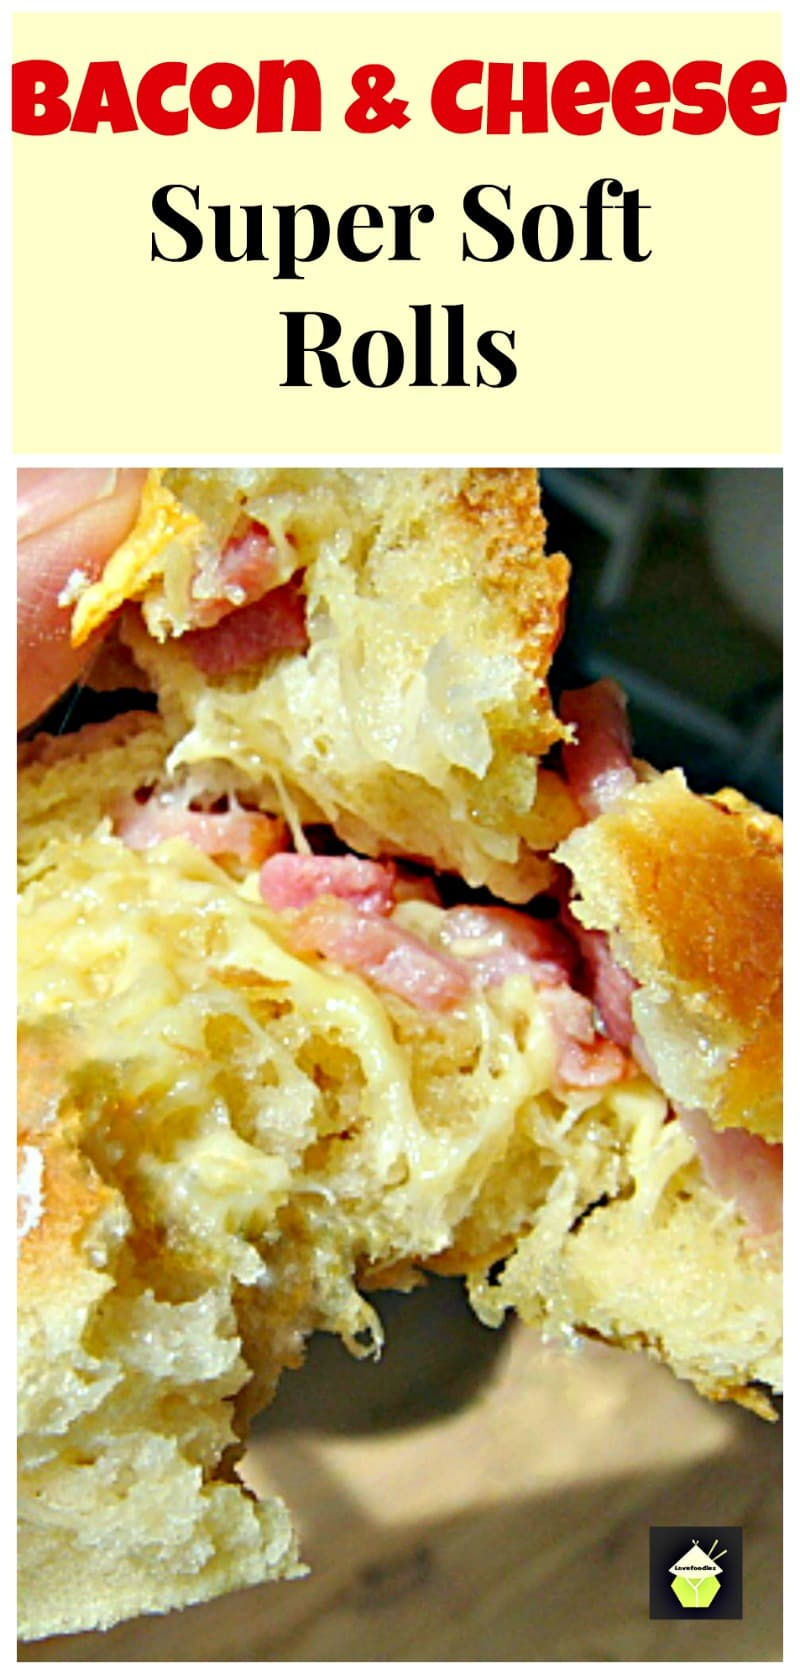 Bacon & Cheese Soft Rolls - Super delicious when eaten fresh from the oven when the cheese is melting!